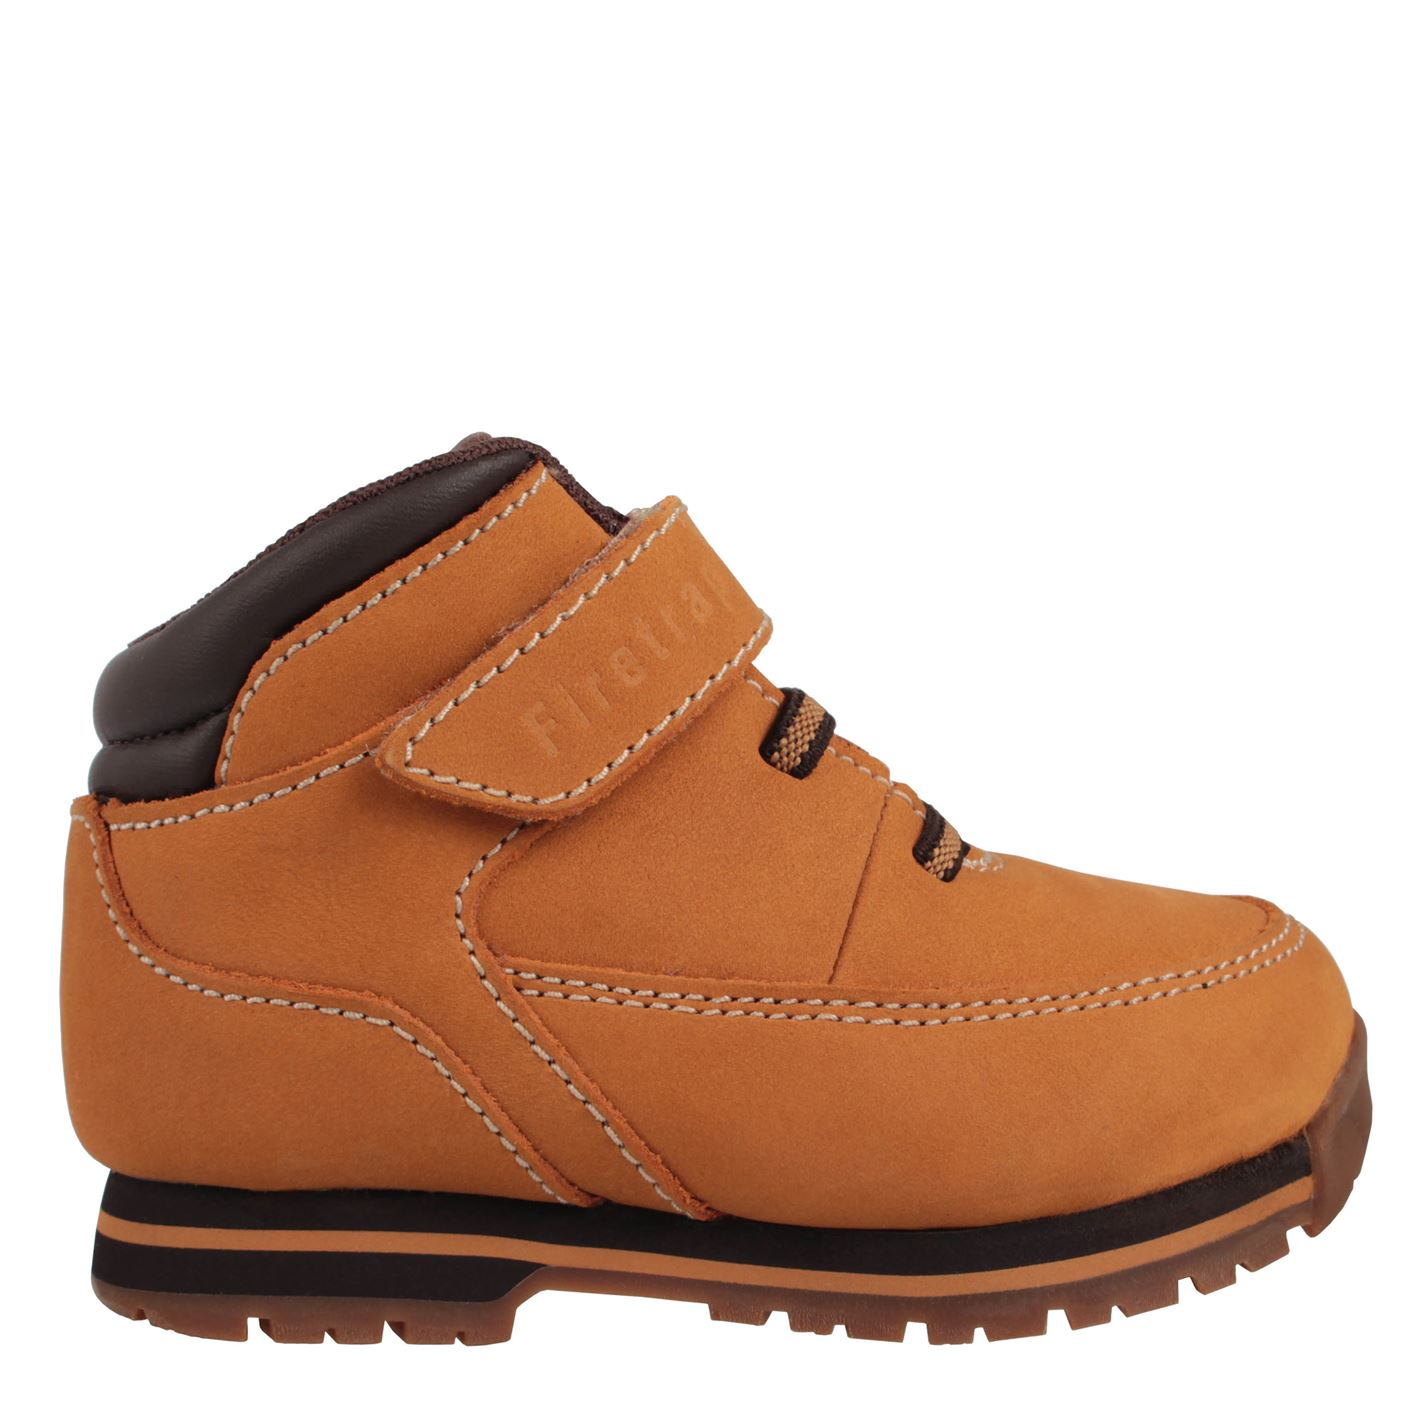 Firetrap Rhino Infant Boots Honey/Brown